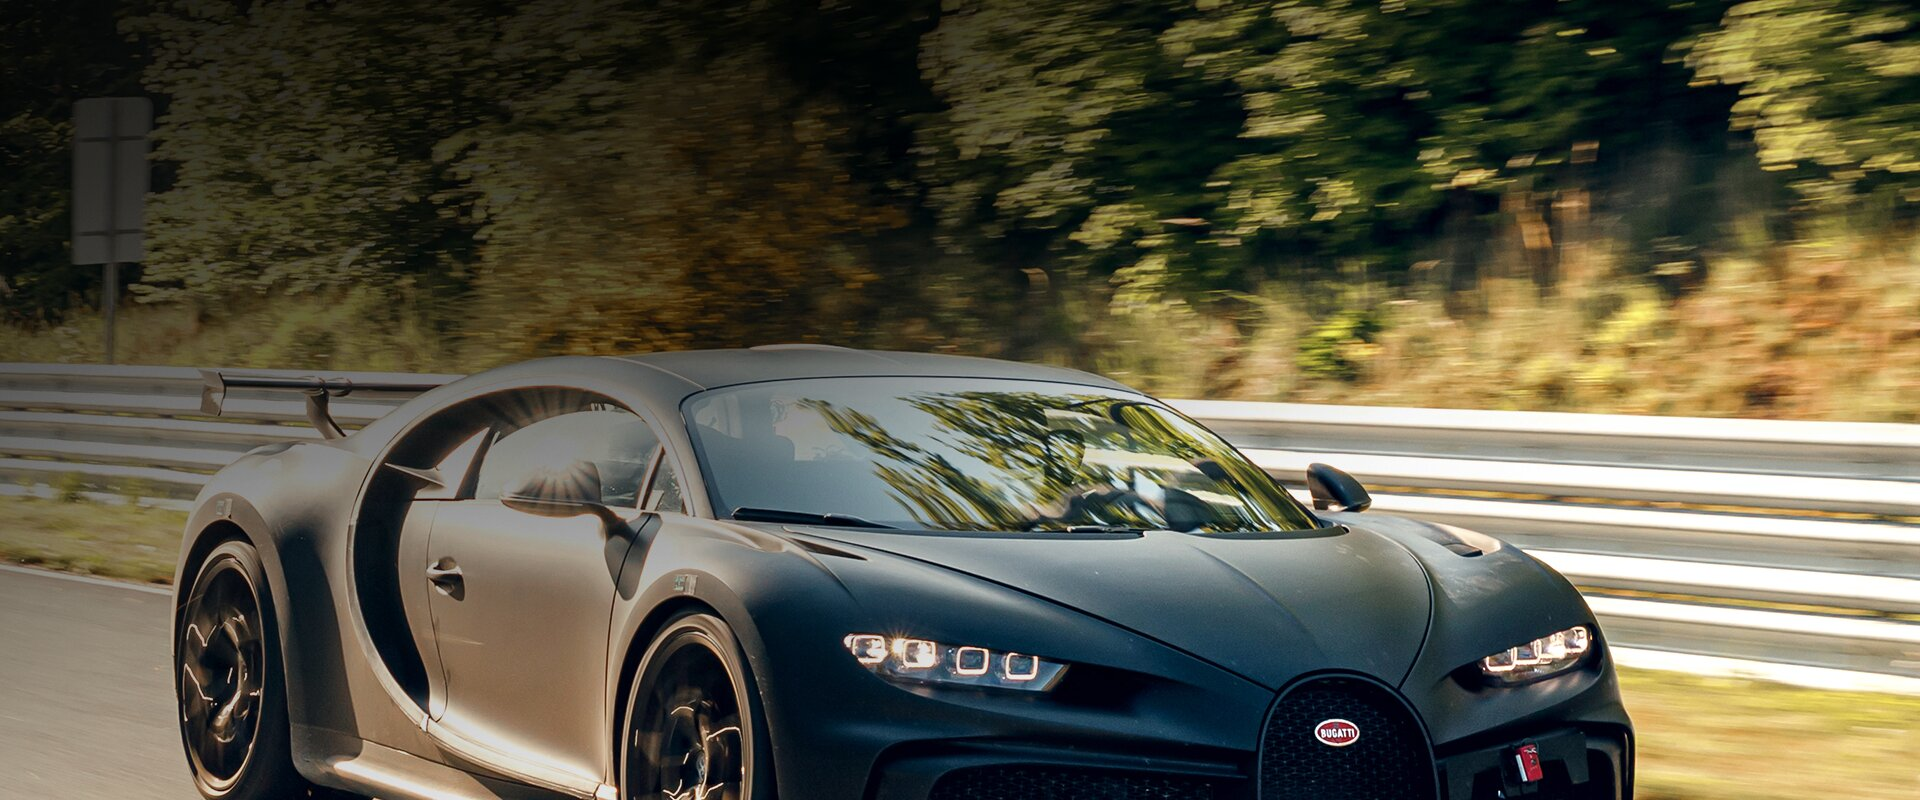 fine tuning chiron pur sport